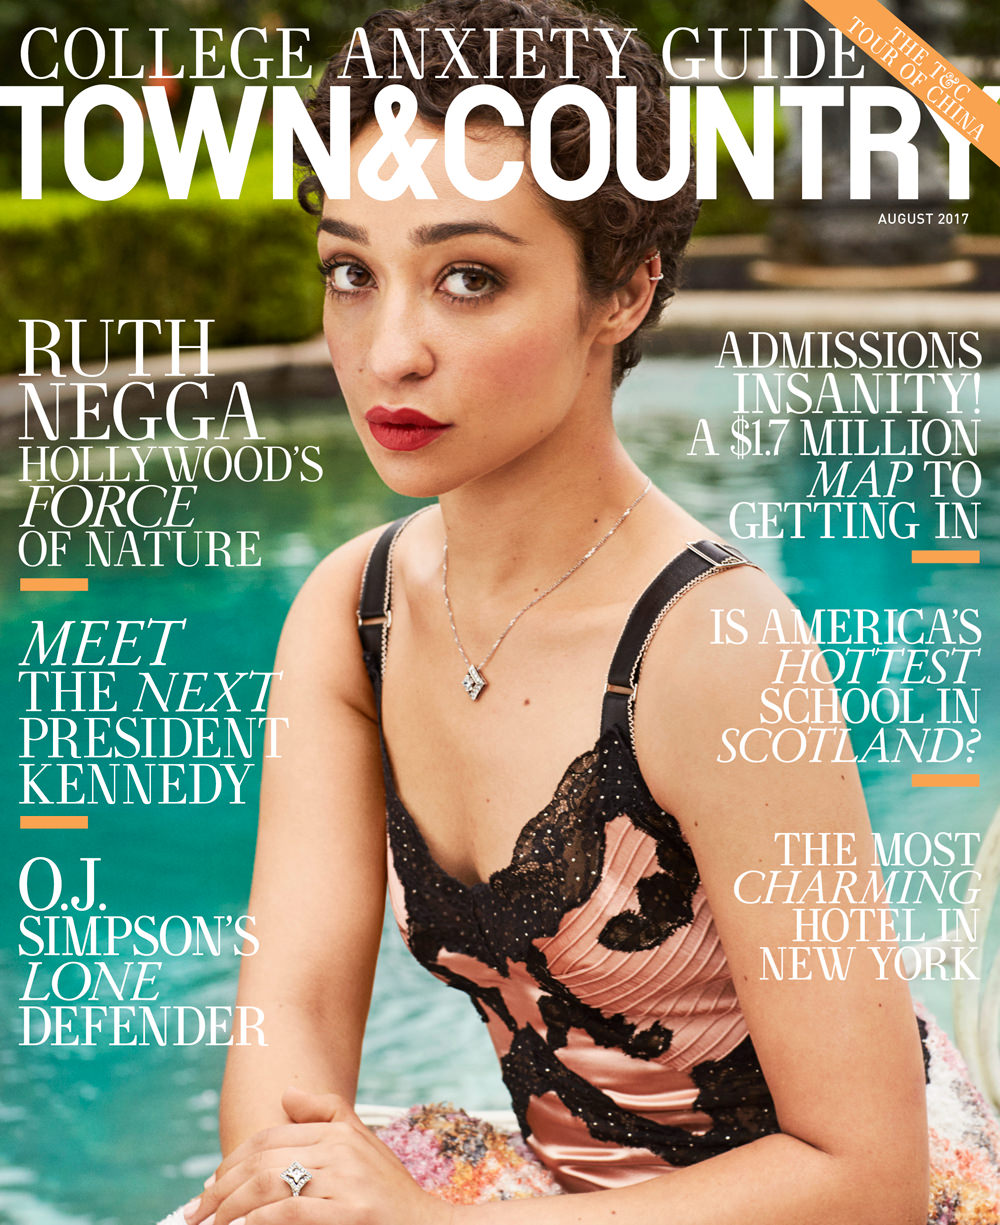 Ruth Negga Covers The August 2017 Issue Of Town & Country